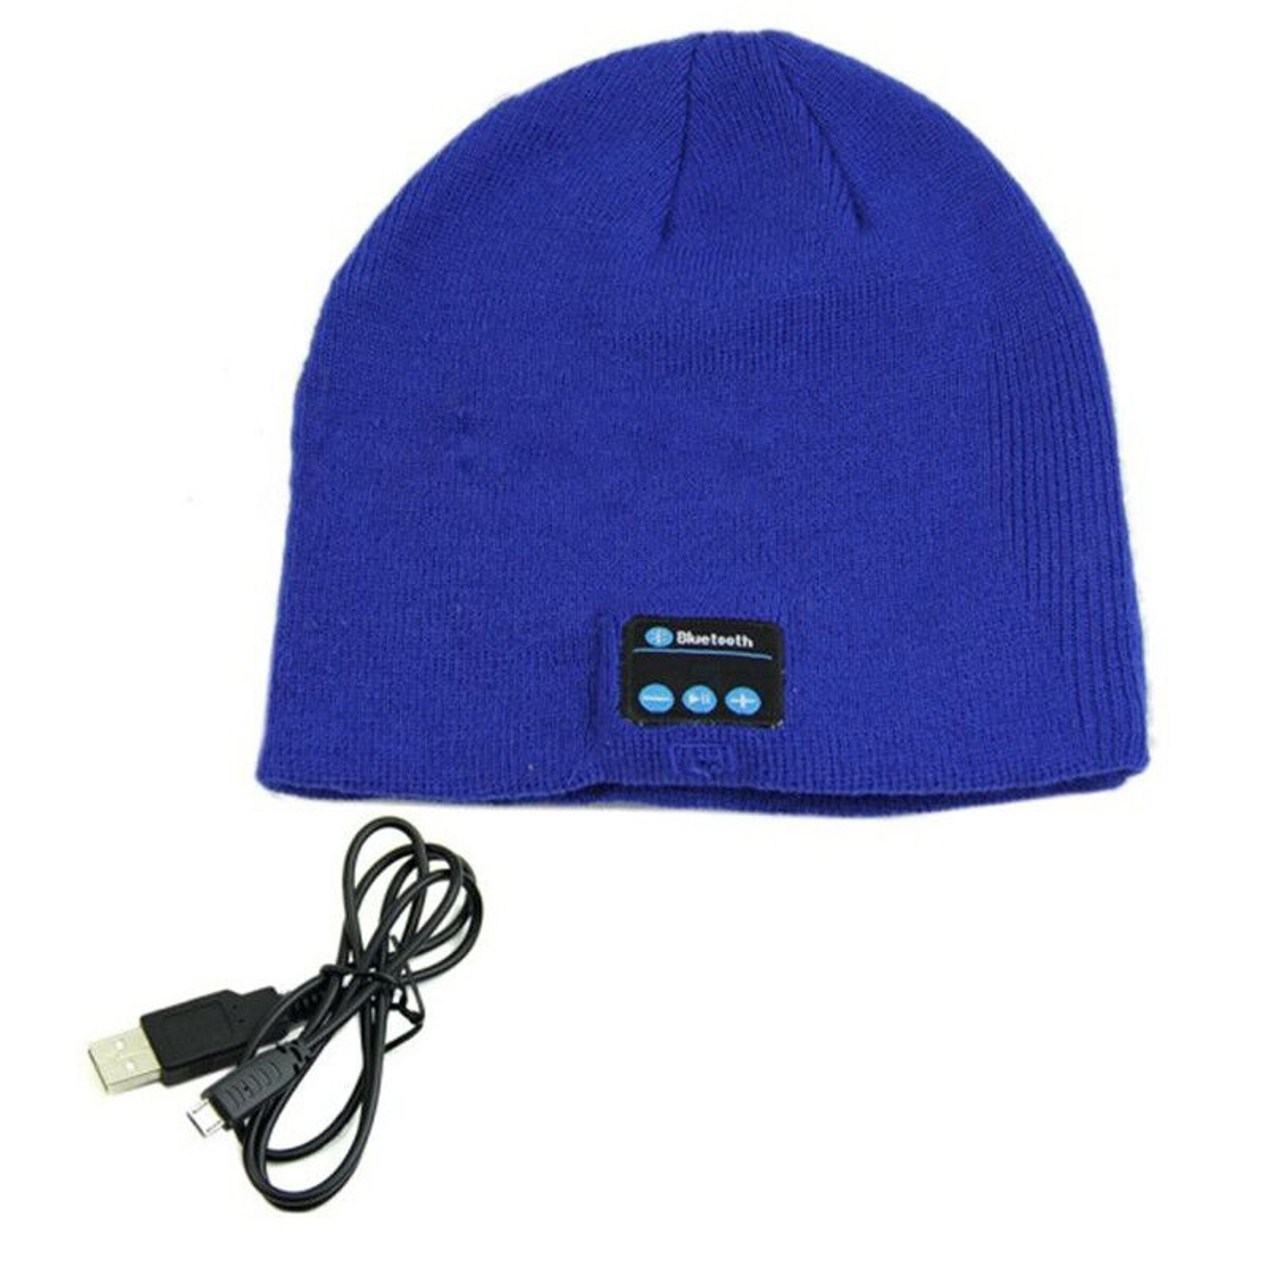 af210b7741f Wireless Bluetooth Beanie Hat with Built-in Headphones - Tanga